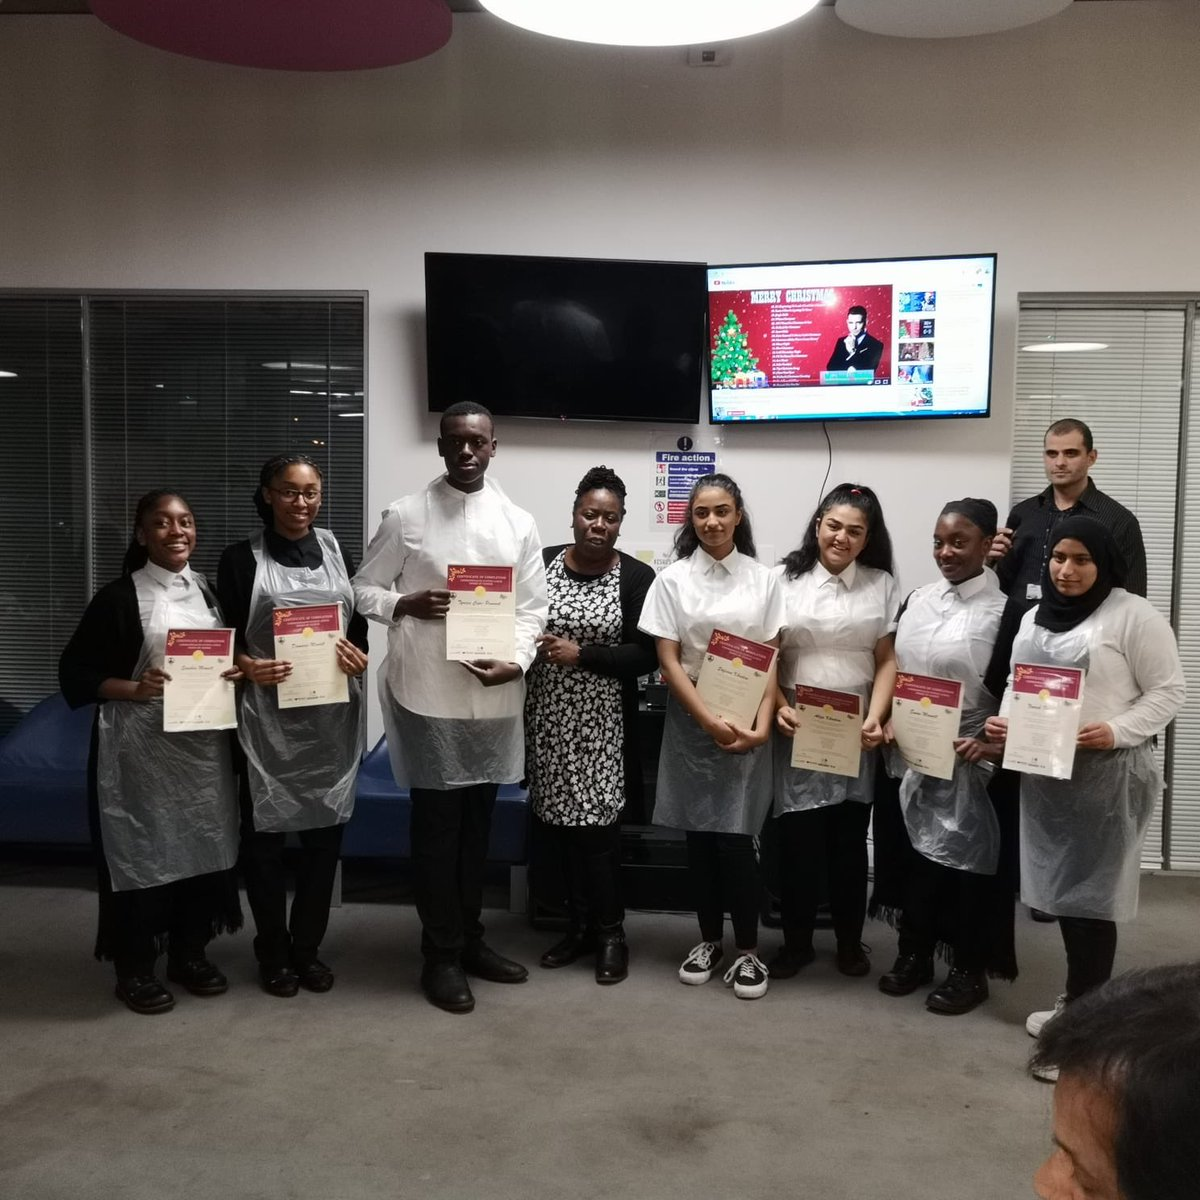 Attended a fantastic project called This is my City. I attended a session looking at dishes of the Commonwealth. I was blown away at the dishes created by young people.@healthybrum @mickattheherald @DrJV75 @khalid4PB